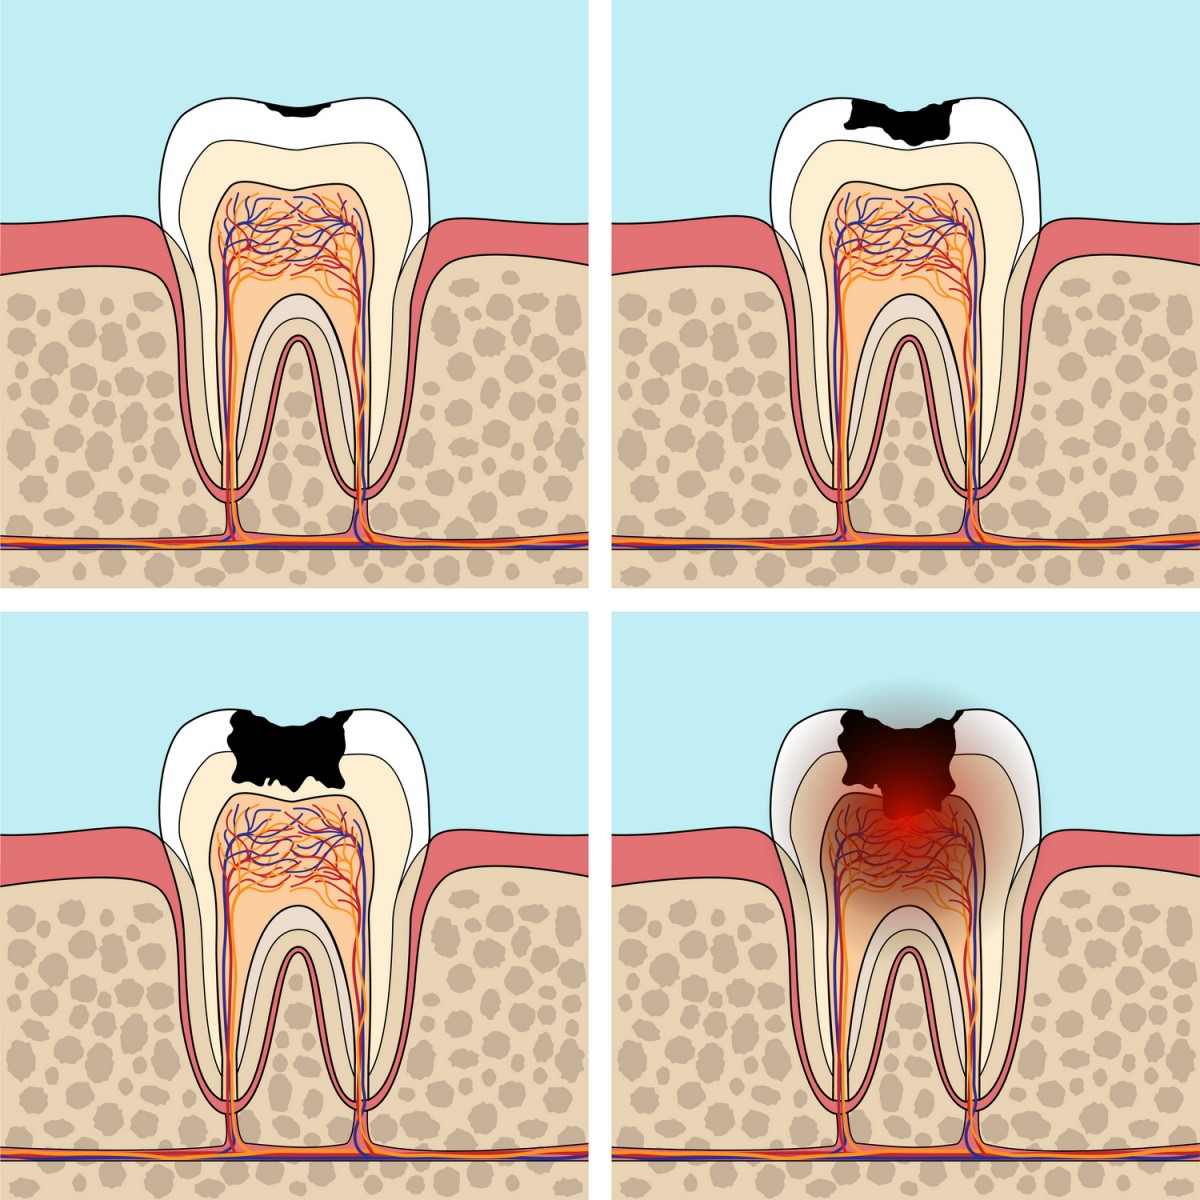 terapia cariilor dentare